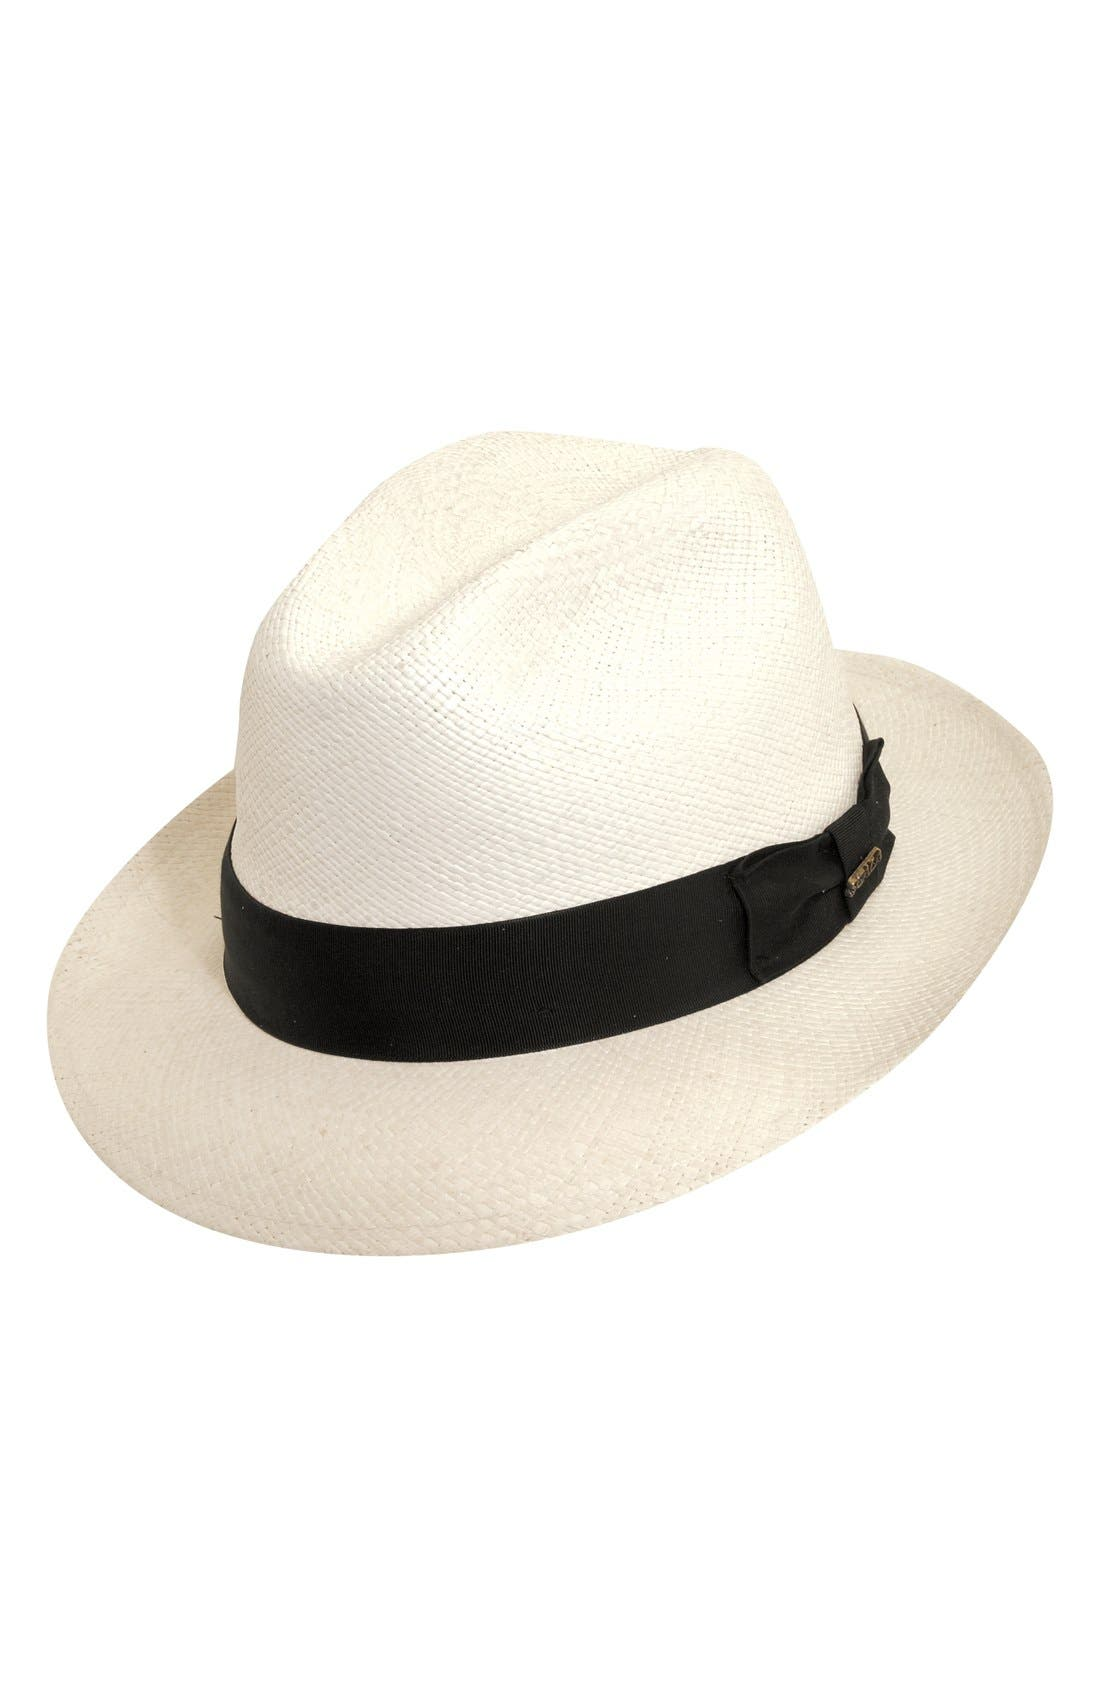 Men's Vintage Style Hats Mens Scala Straw Trilby - $130.00 AT vintagedancer.com